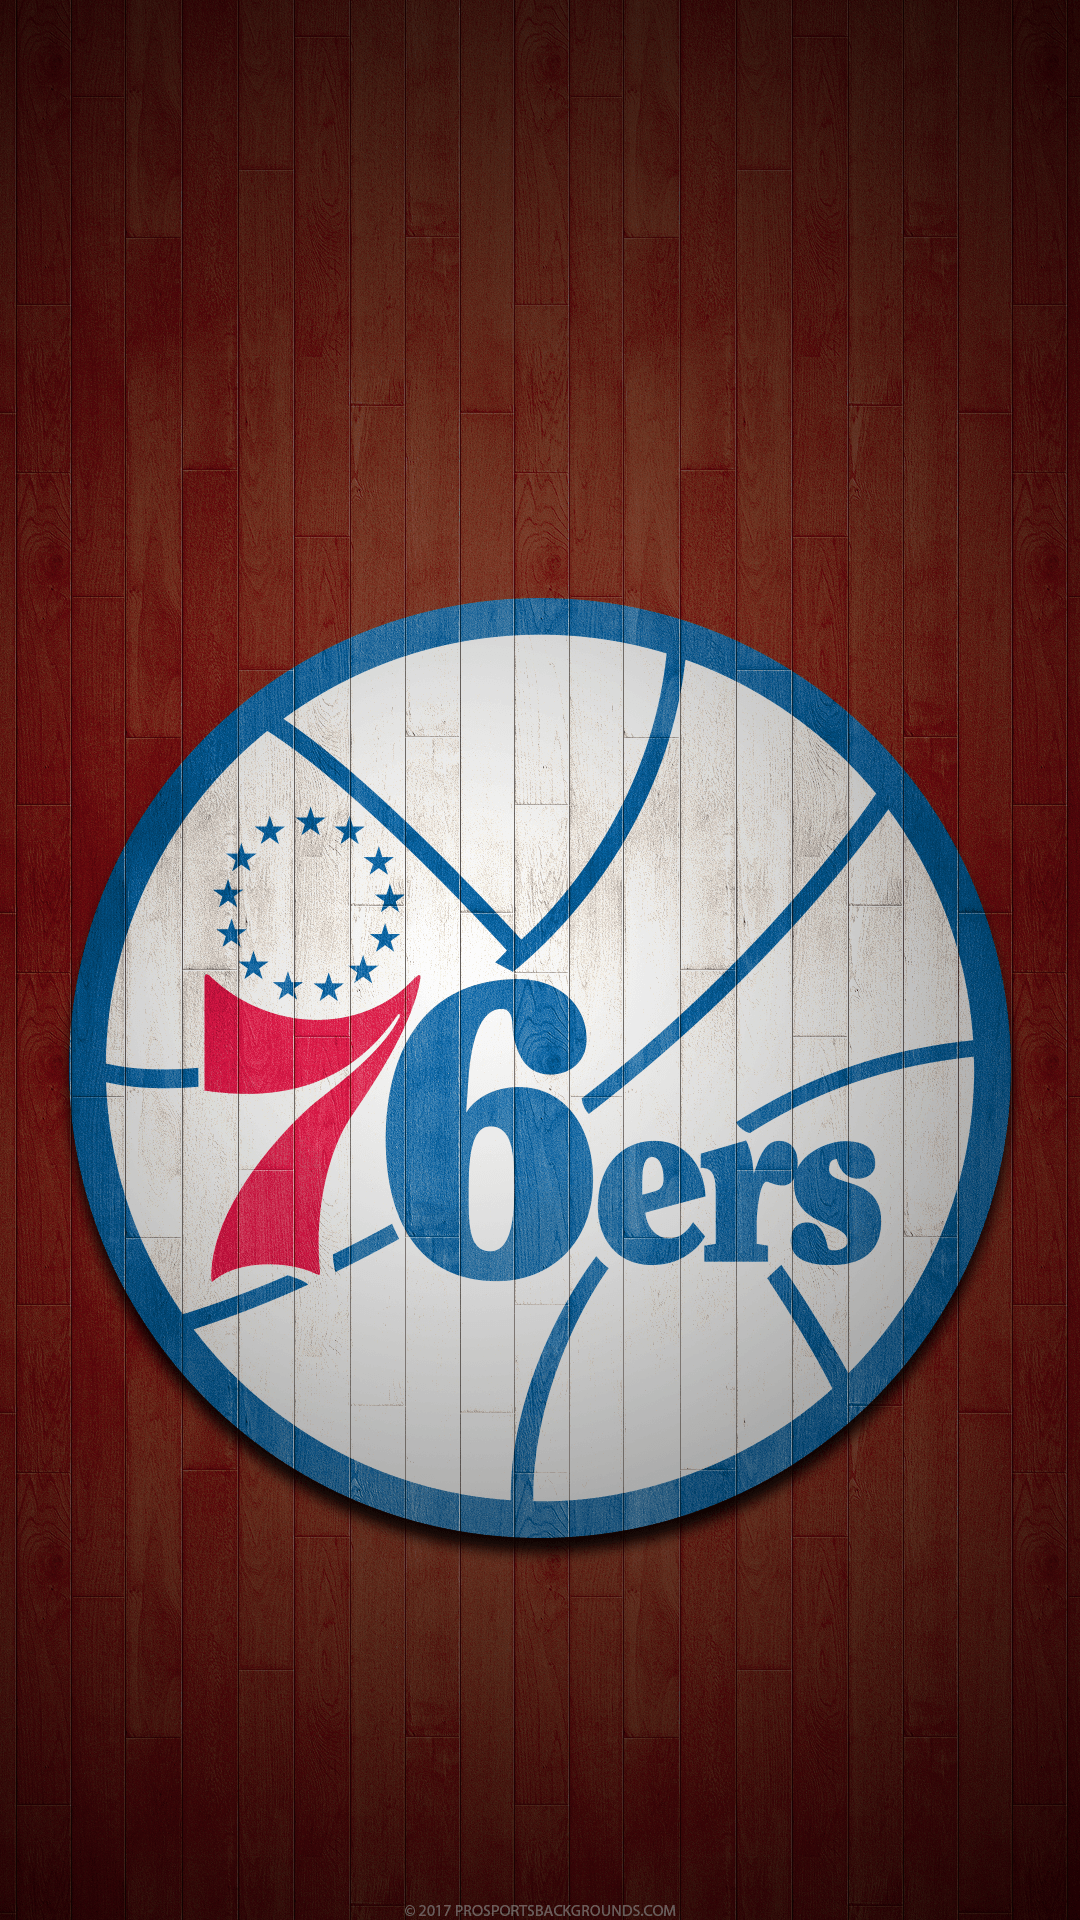 Sixers Iphone Wallpapers Top Free Sixers Iphone